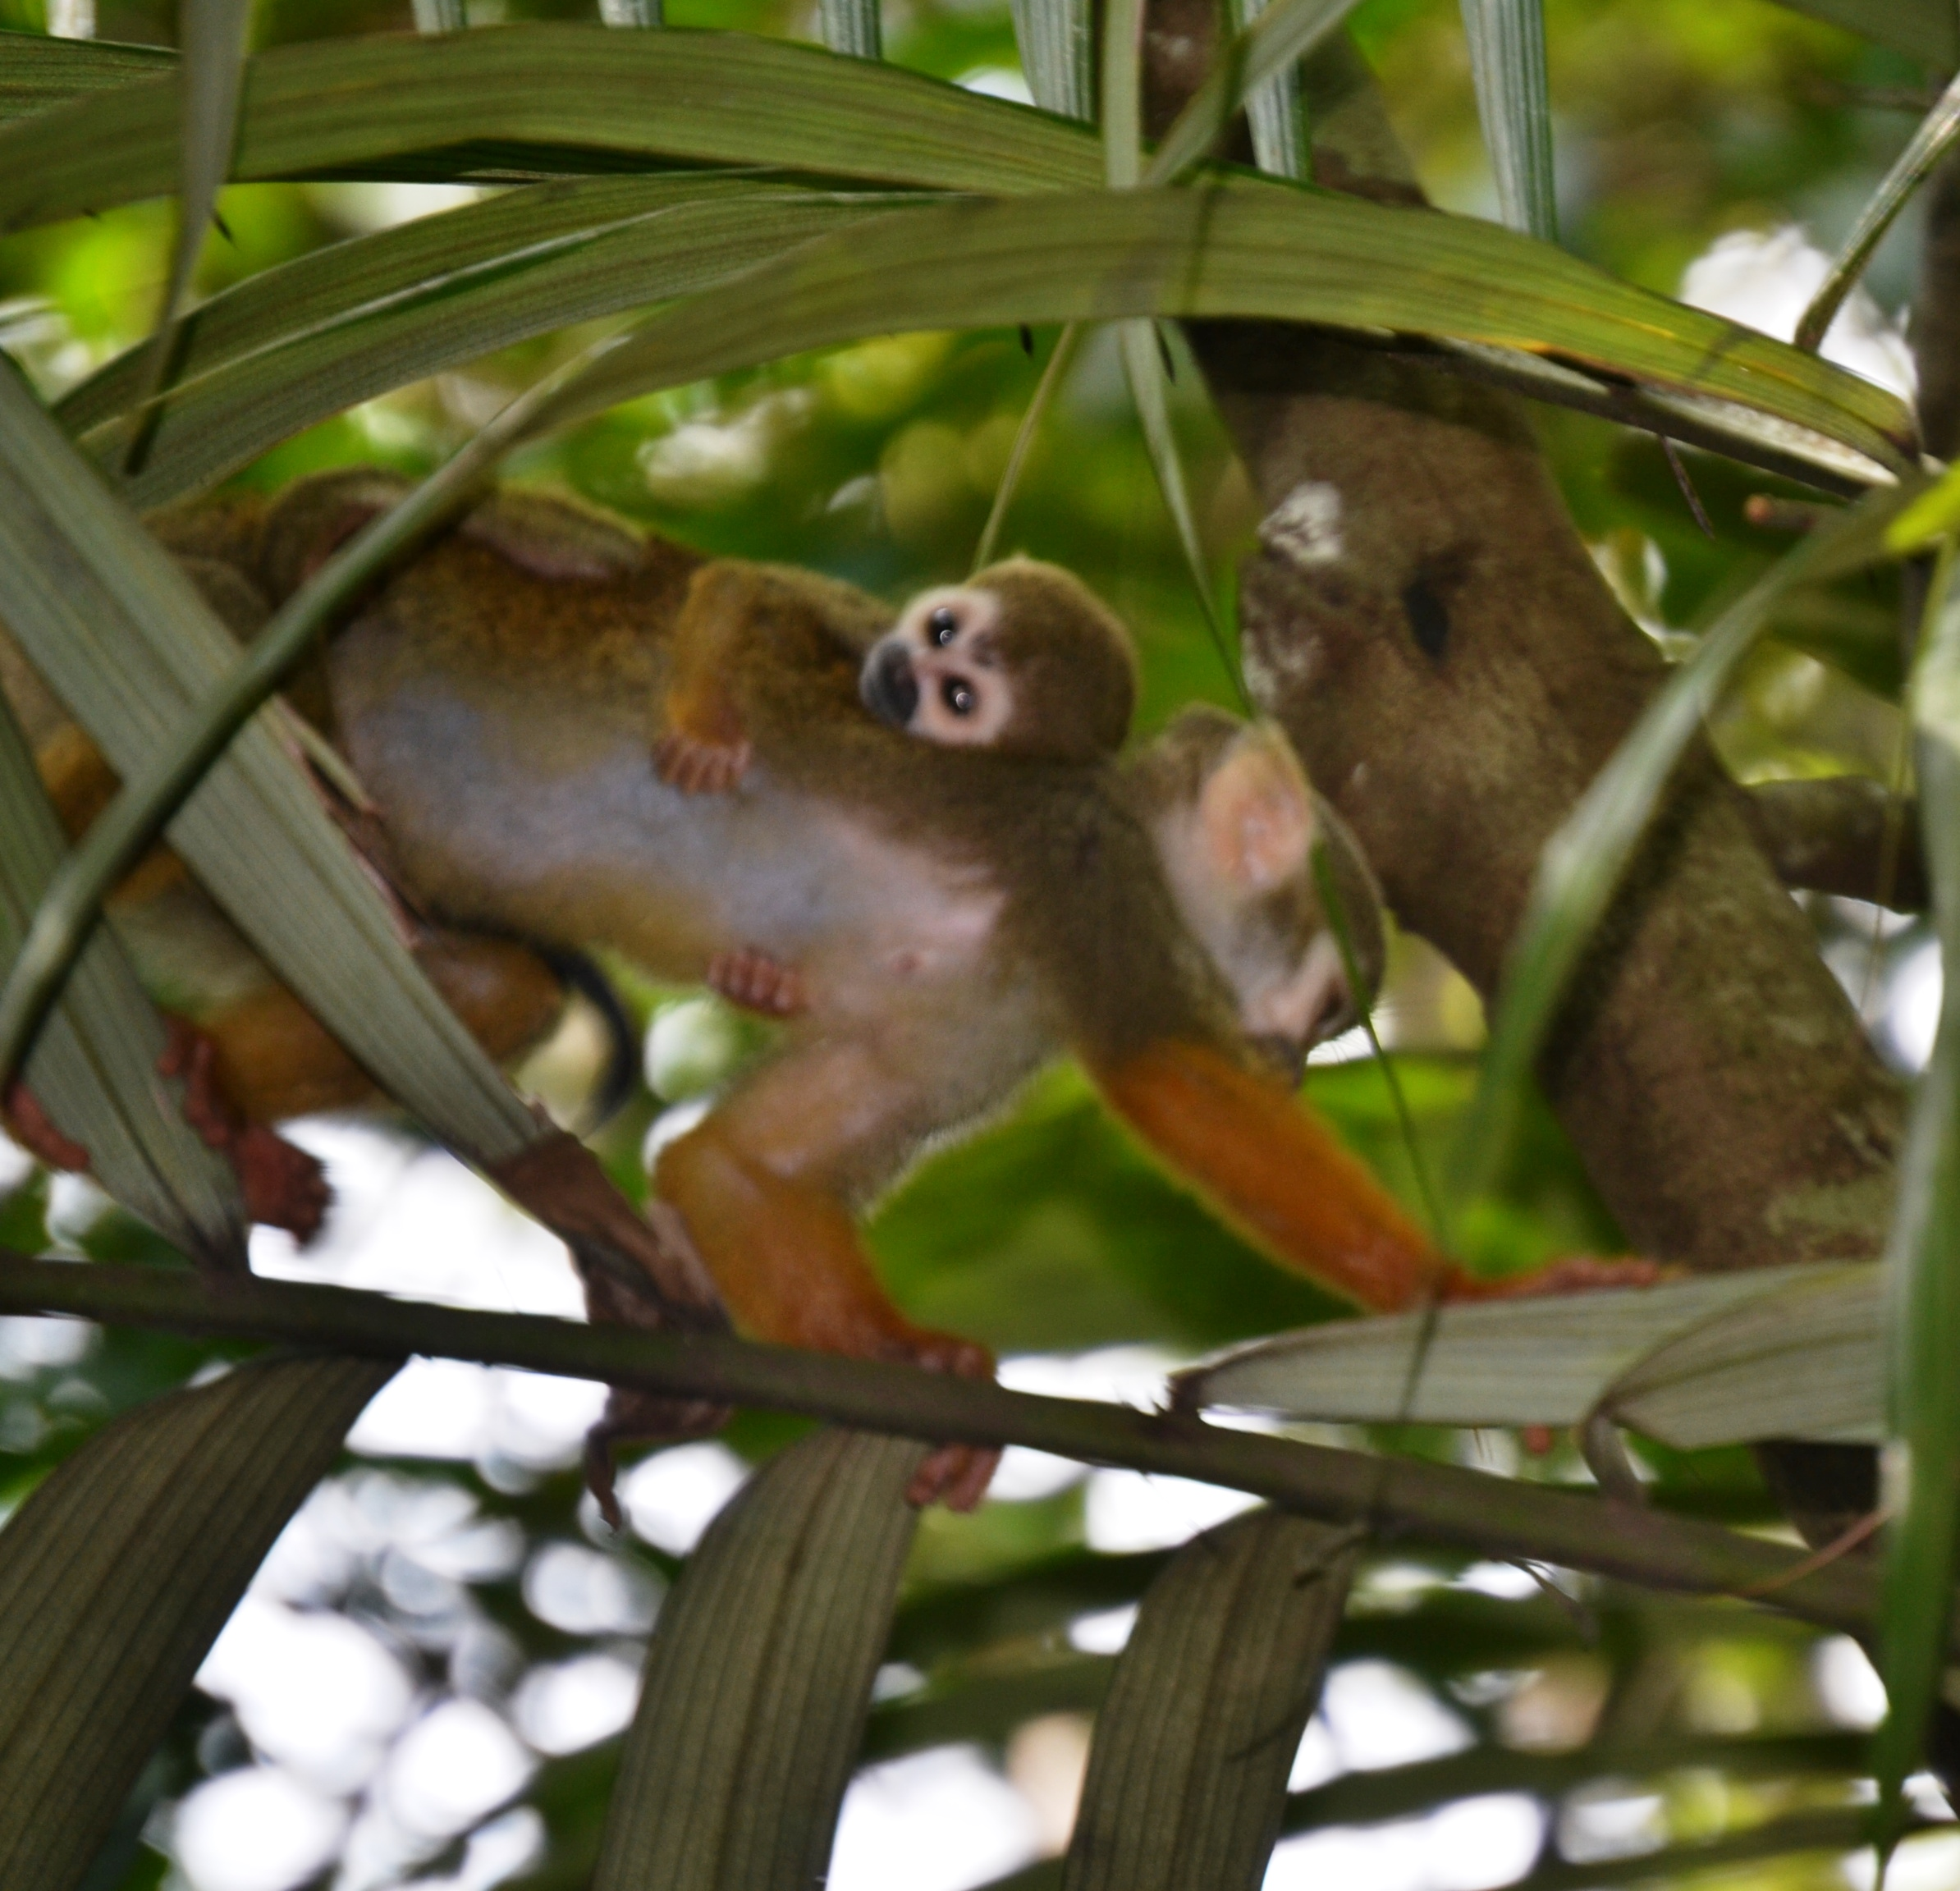 An adult squirrel monkey traveling with a babyPhoto: Anita Stone